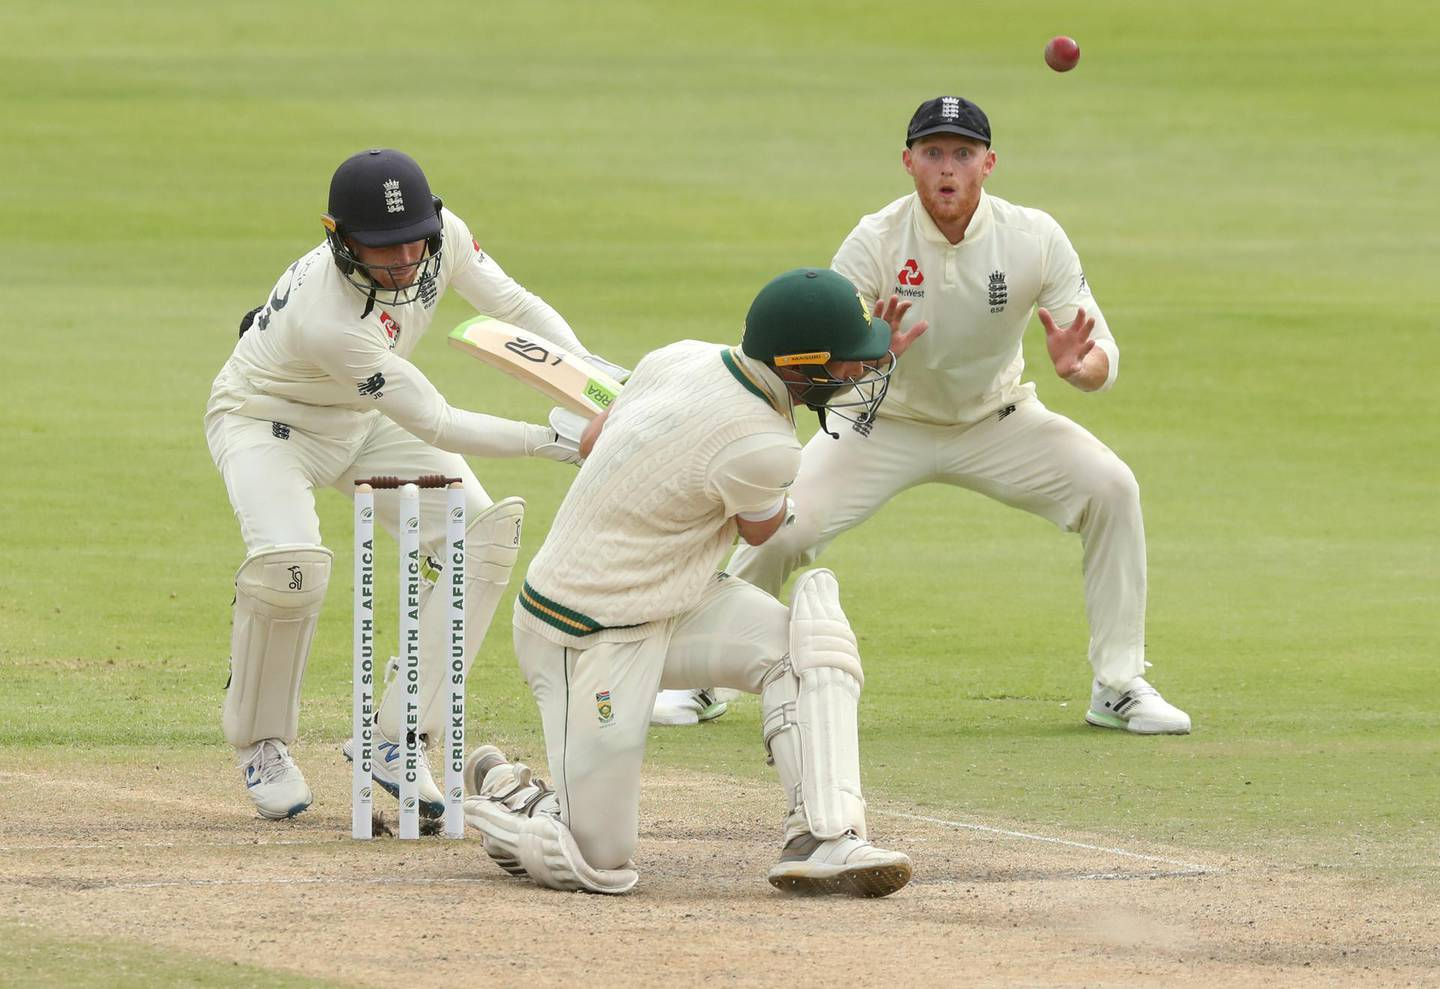 Cricket - South Africa v England - Second Test - PPC Newlands, Cape Town, South Africa - January 6, 2020   South Africa's Pieter Malan in action as England's Ben Stokes reacts   REUTERS/Mike Hutchings